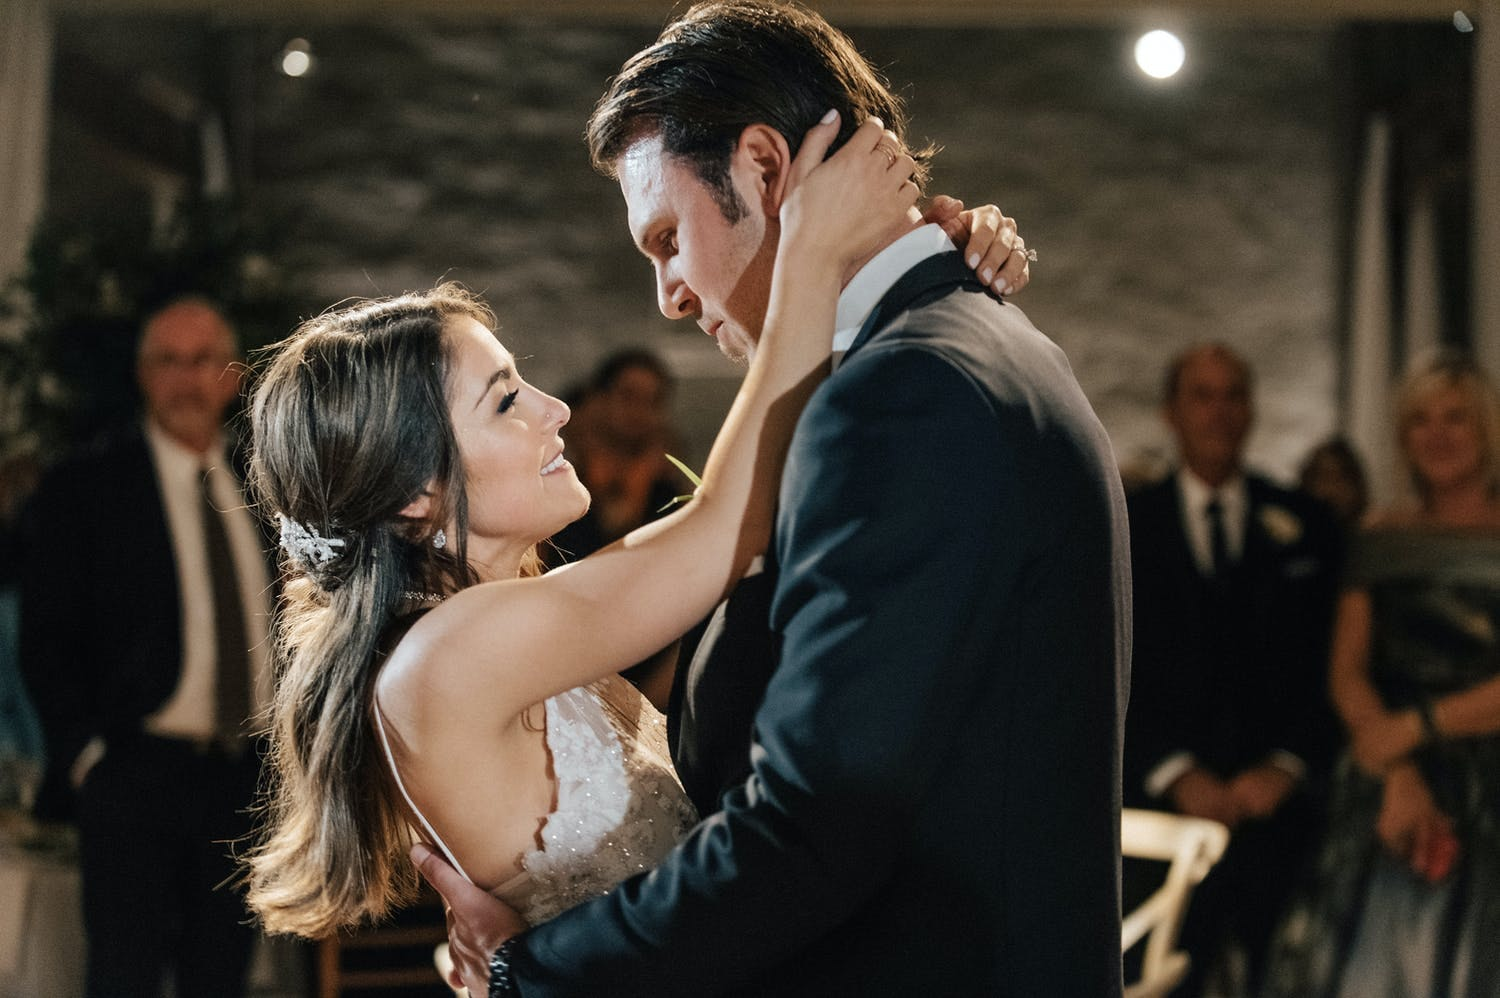 Close up of bride cupping groom's face while dancing.